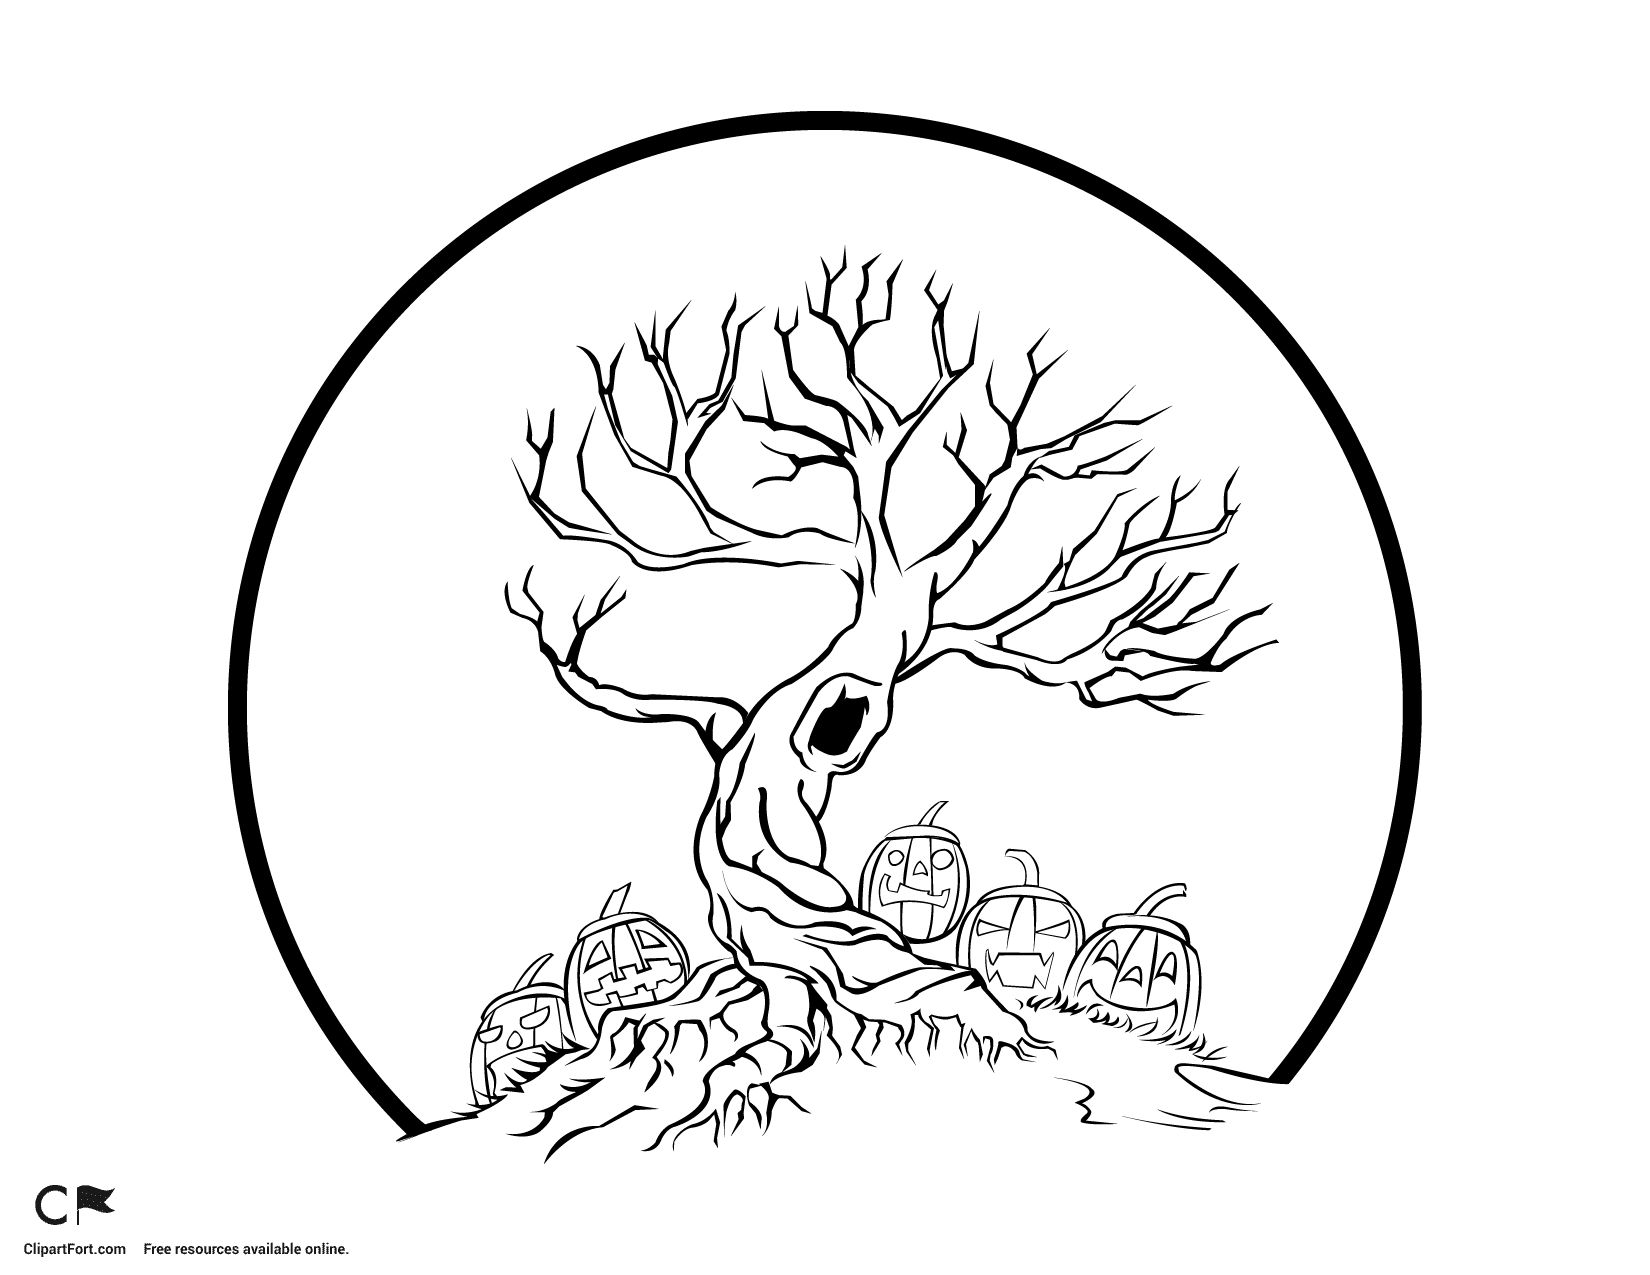 The Halloween Tree Coloring Pages Free Tree Coloring Page Halloween Coloring Pages Halloween Coloring